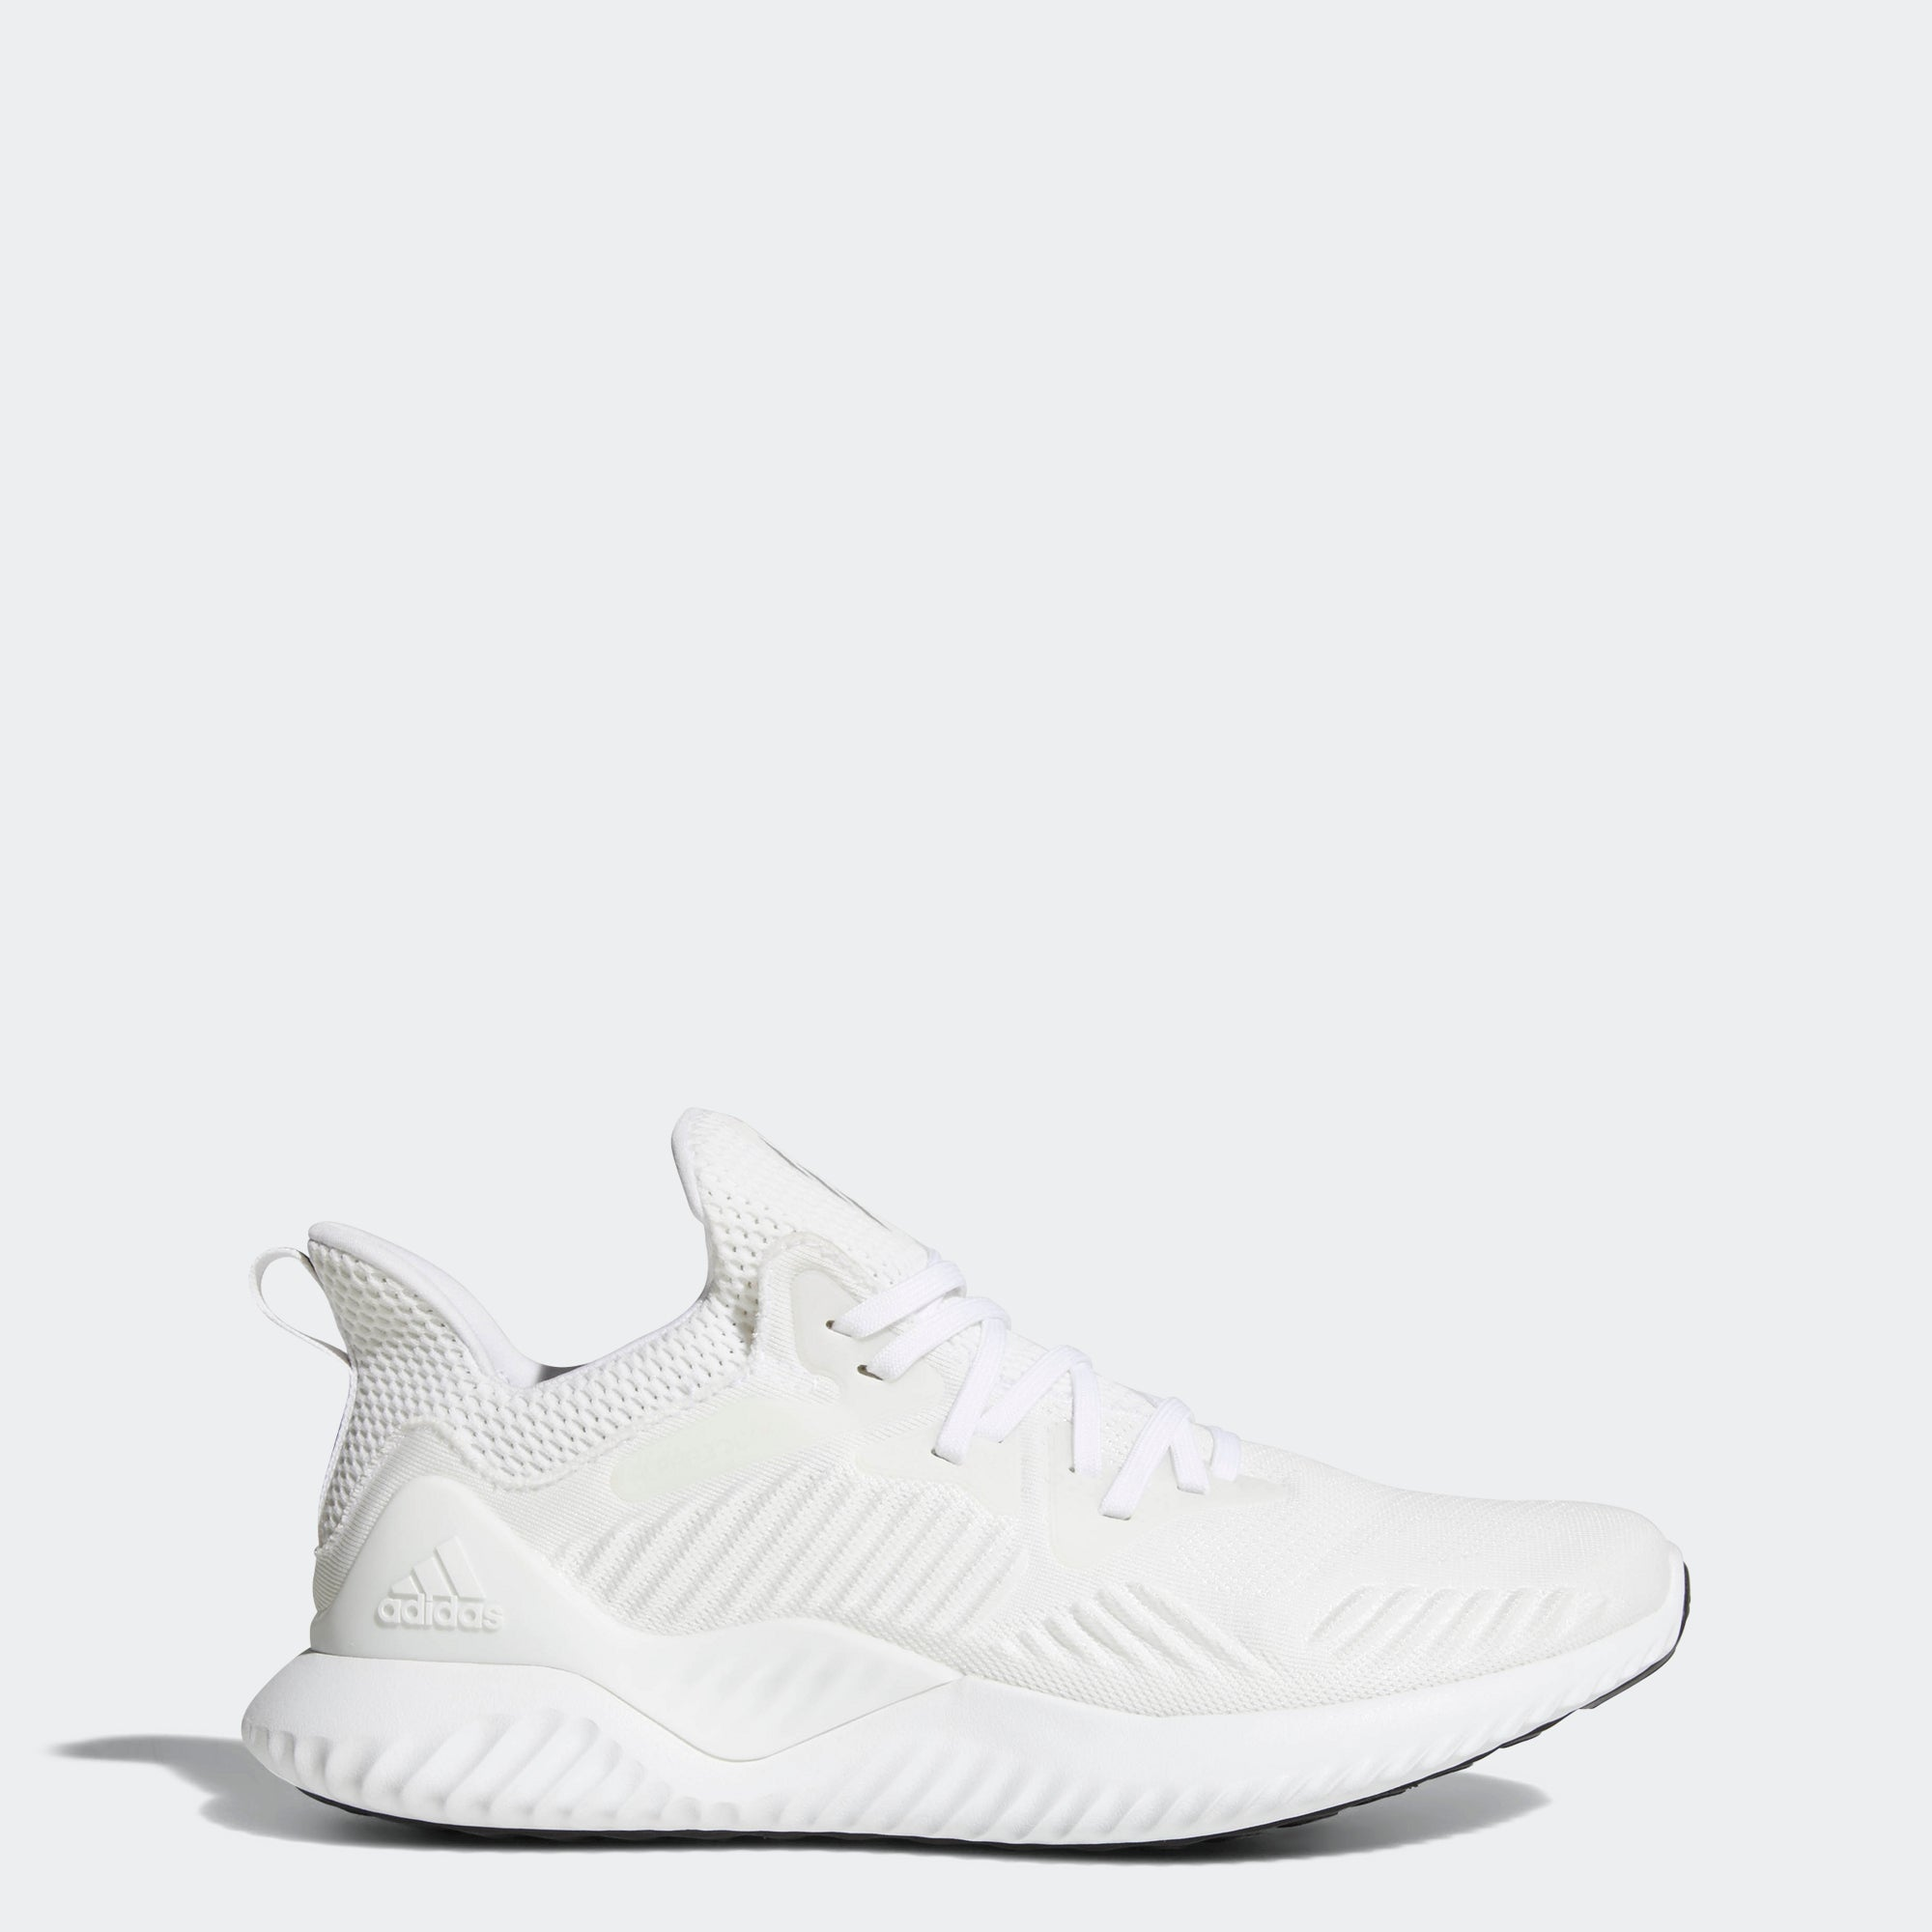 official photos 3633f f712a ... best buy adidas men alphabounce beyond running shoes cloud white silver  metallic online in singapore royal